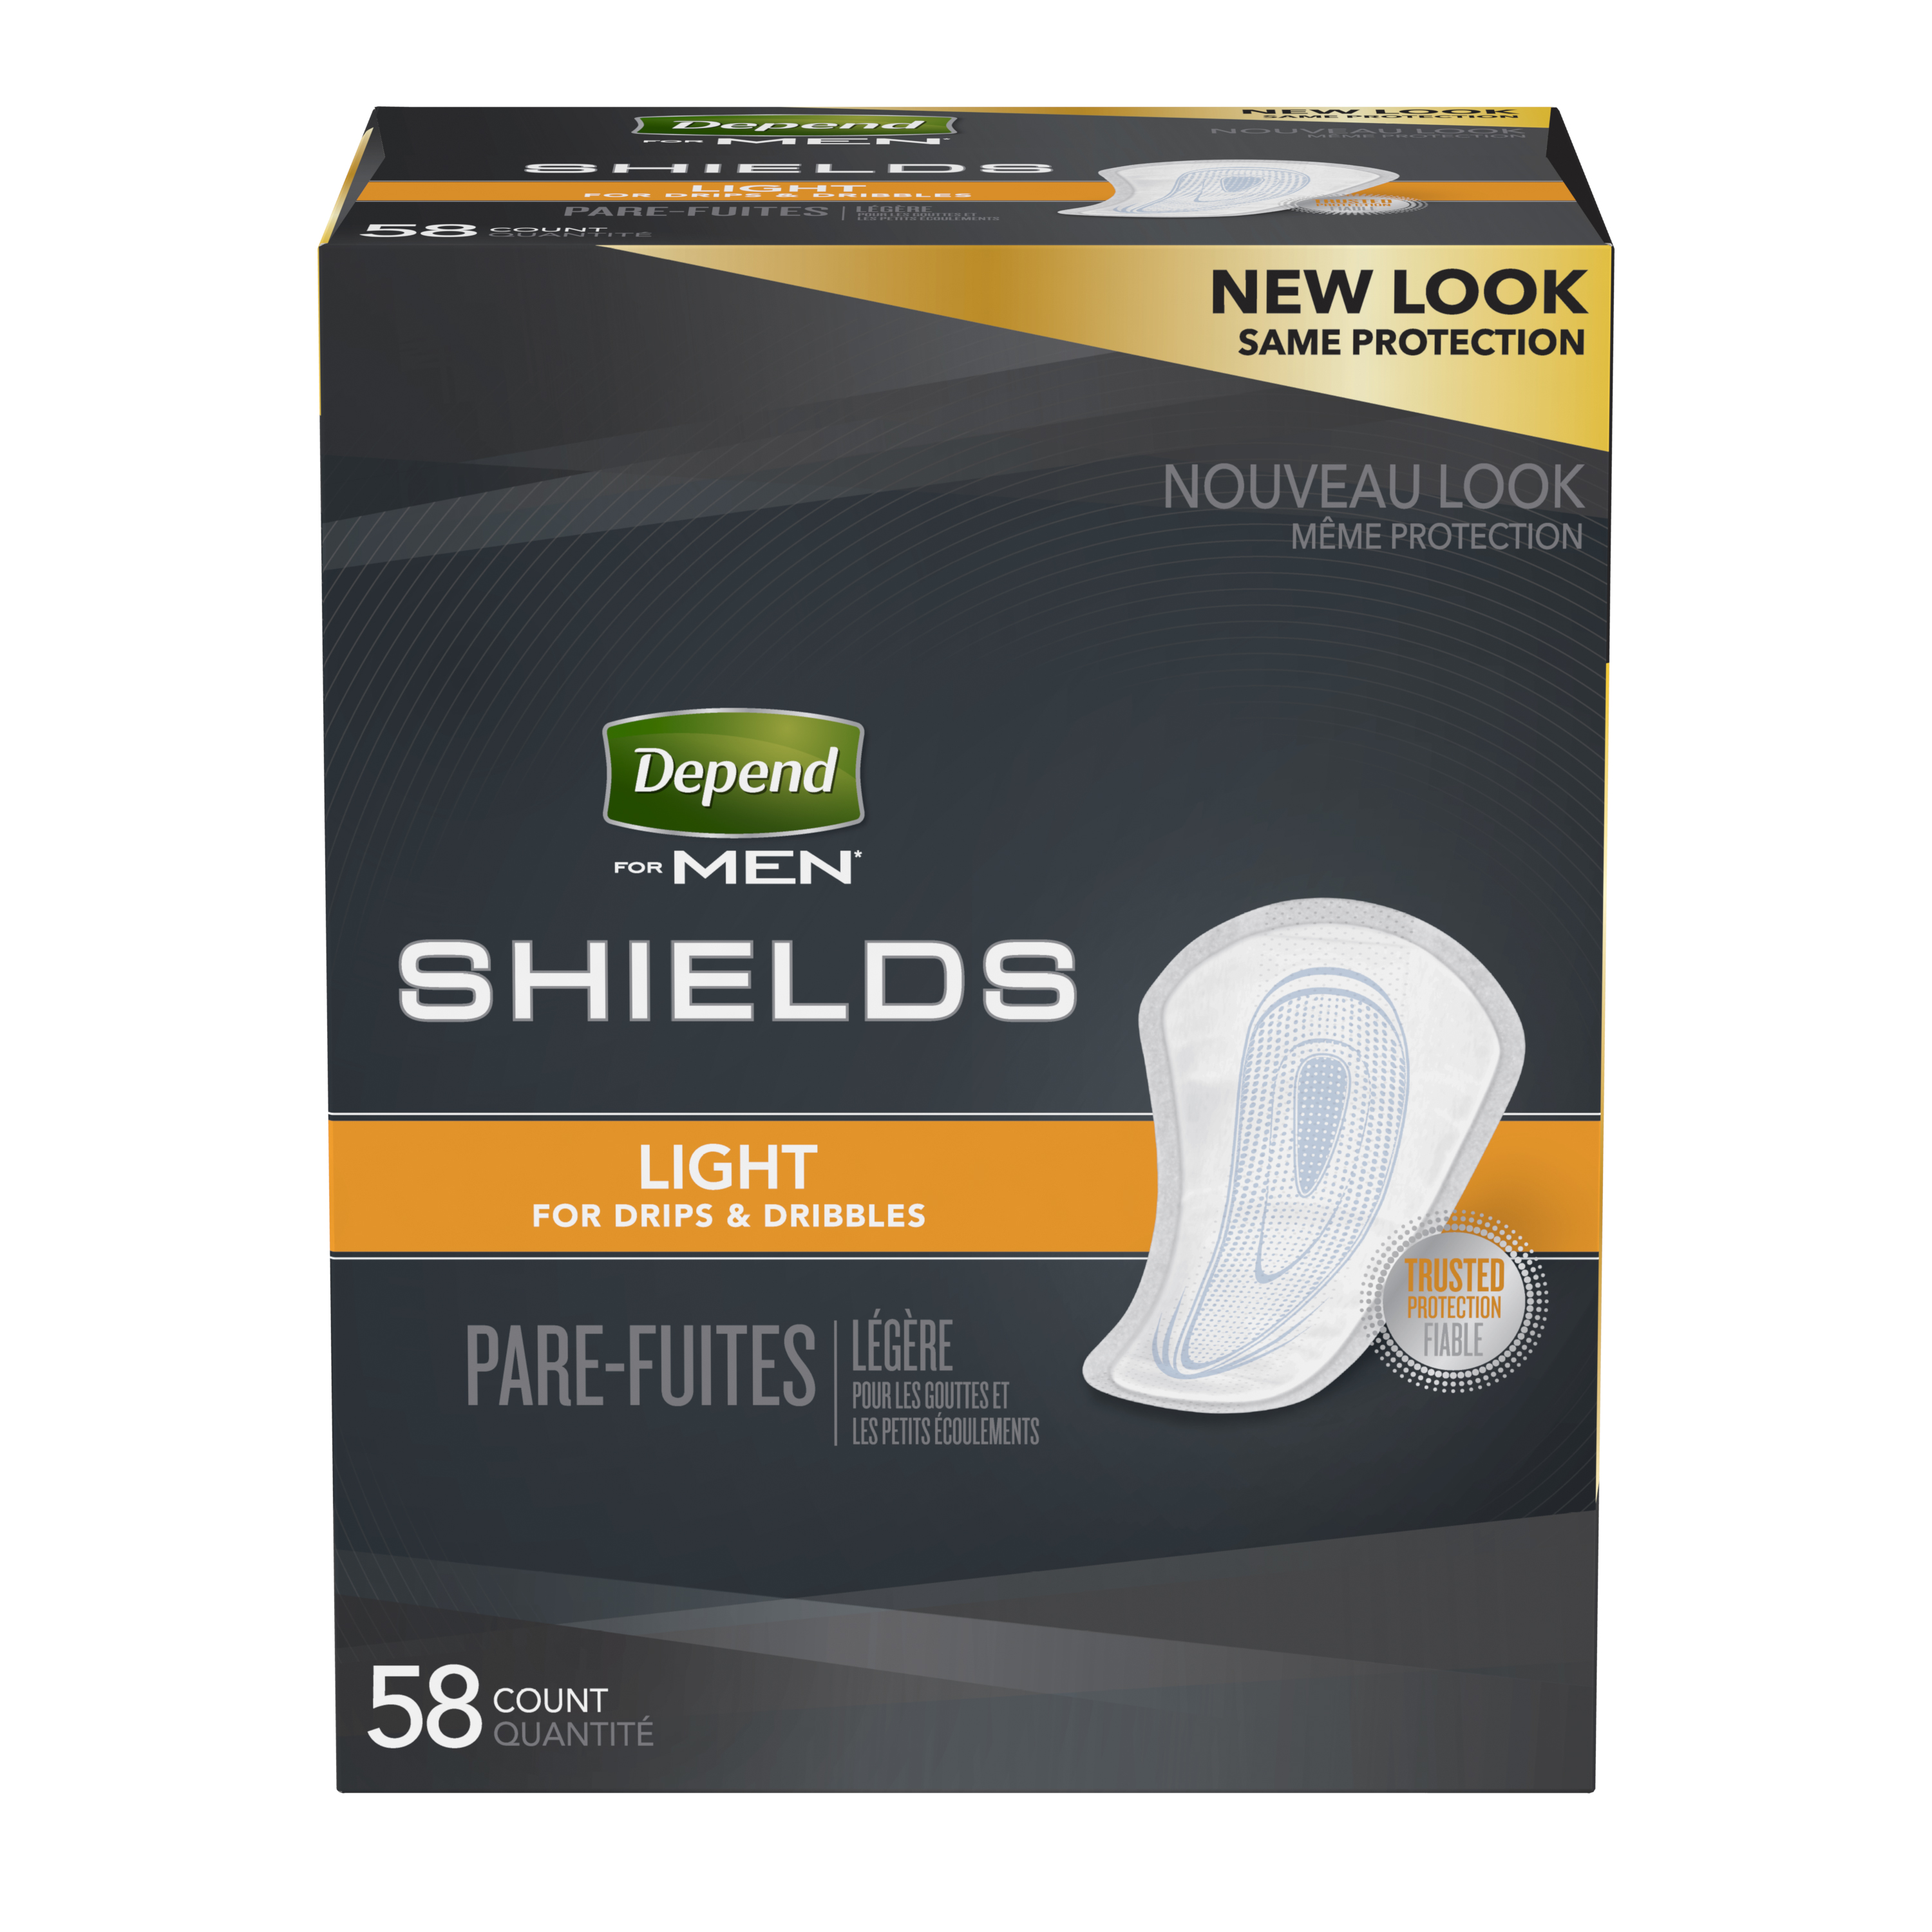 Depend Incontinence Shields for Men, Light Absorbency, 58 Ct